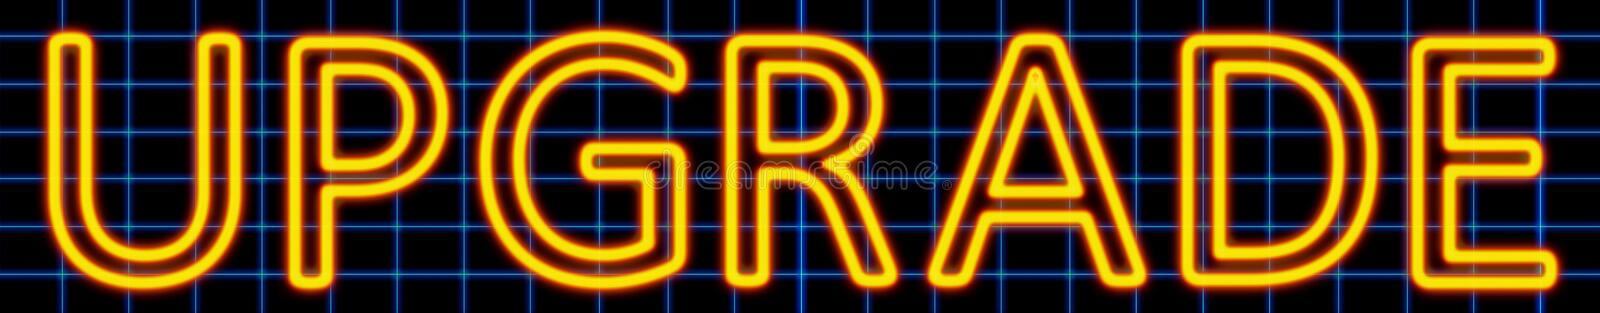 Upgrade neon sign. Abstract 3d rendered words upgrade yellow neon sign on blue wire background vector illustration